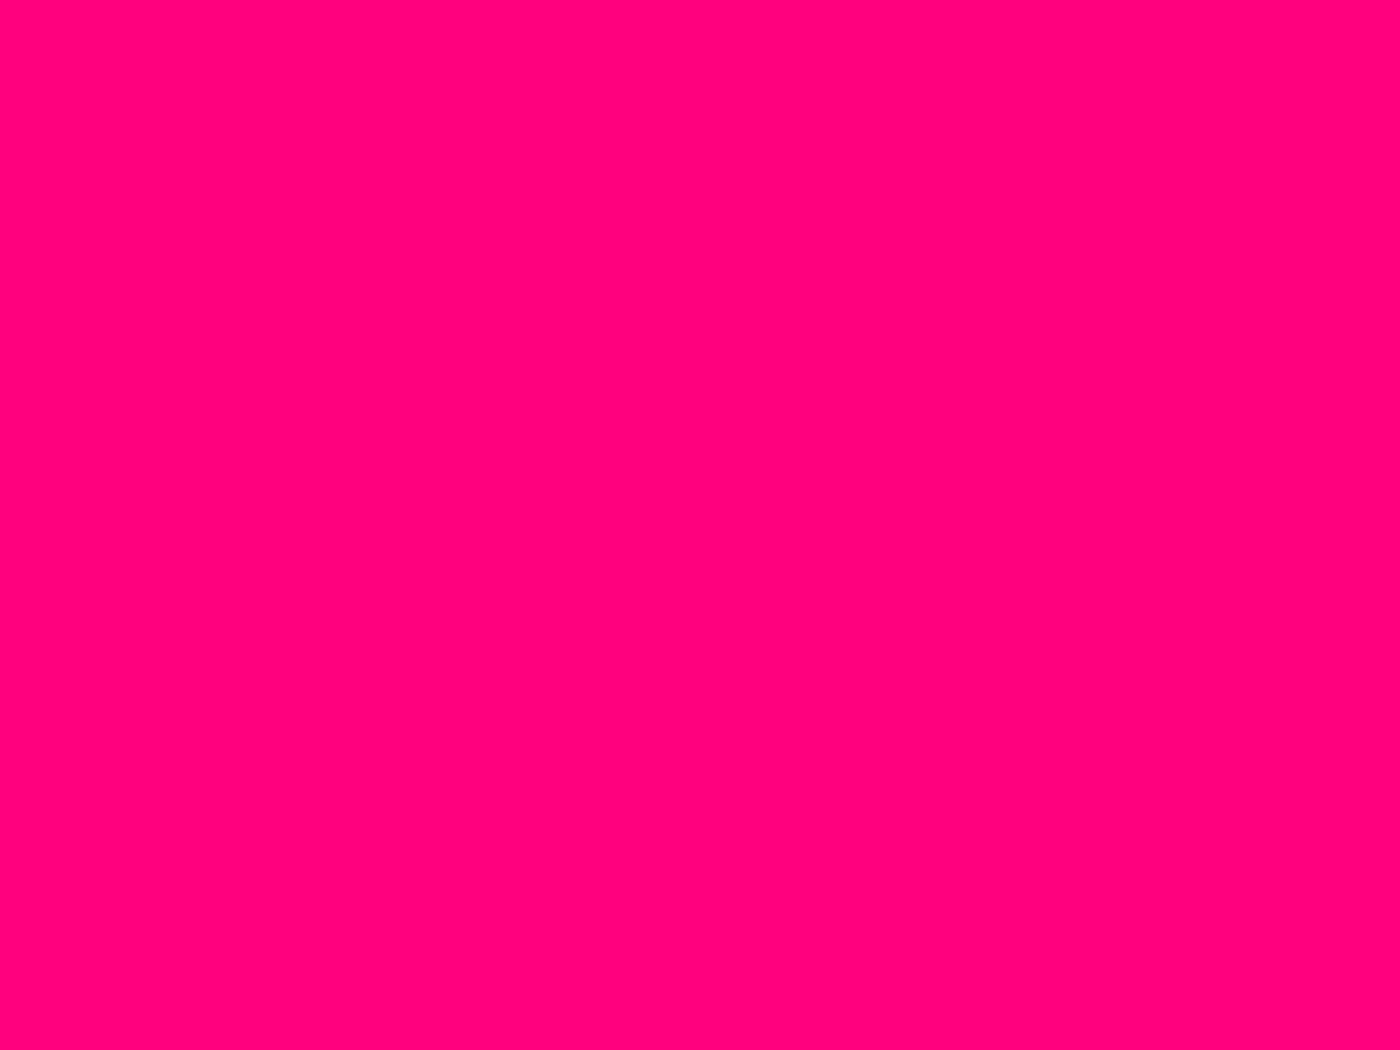 Solid Bright Pink Background Images Pictures   Becuo 1400x1050